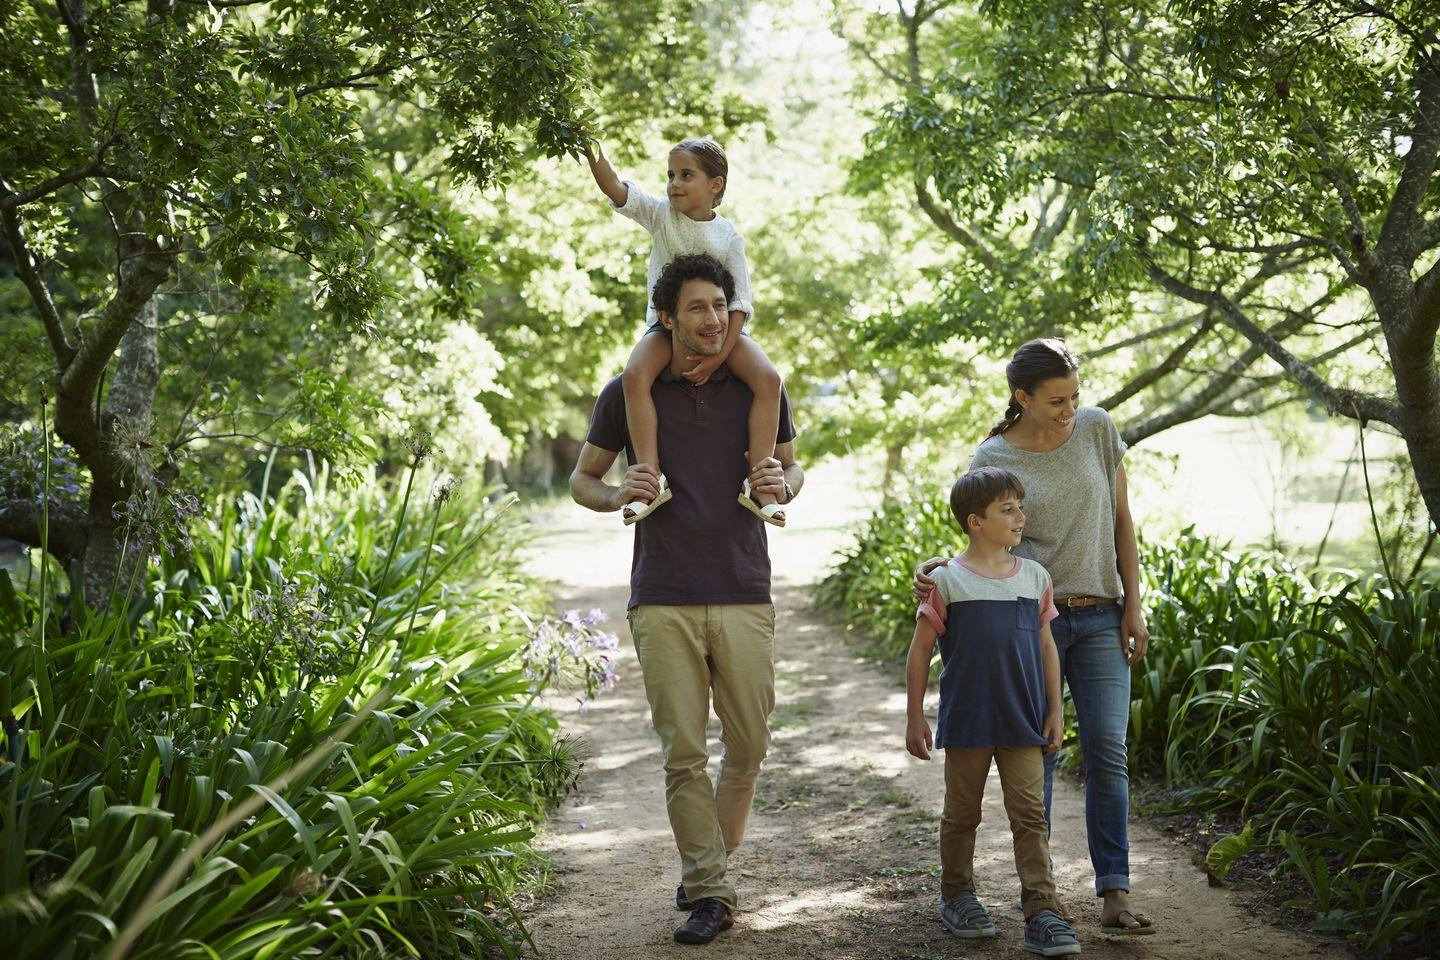 <p>Looking for low-key 4th of July? Use your day off to explore a new neighborhood park as a family. </p>